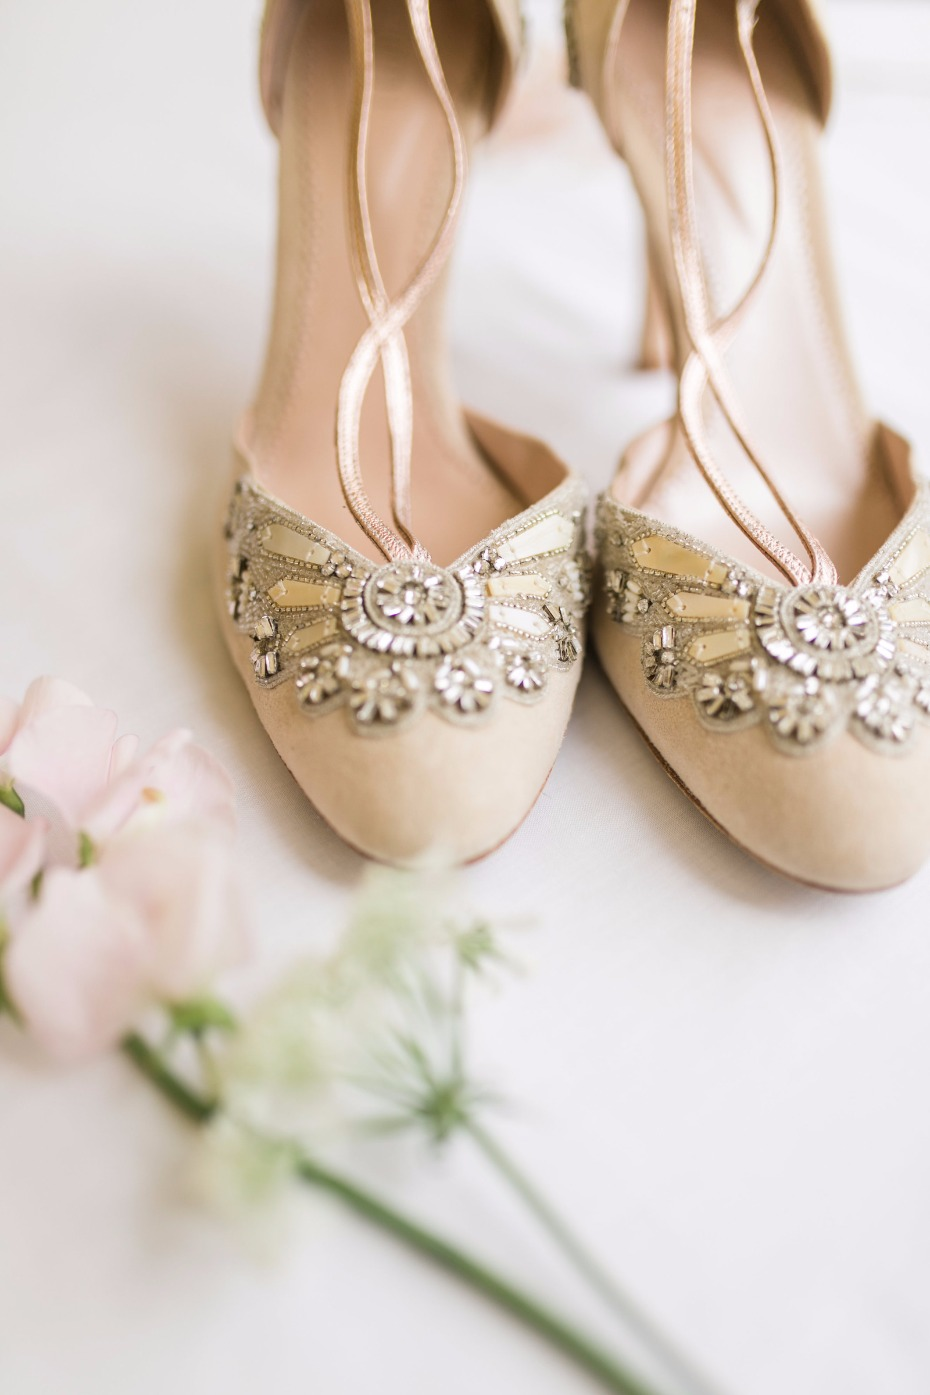 Gorgeous heels for the bride